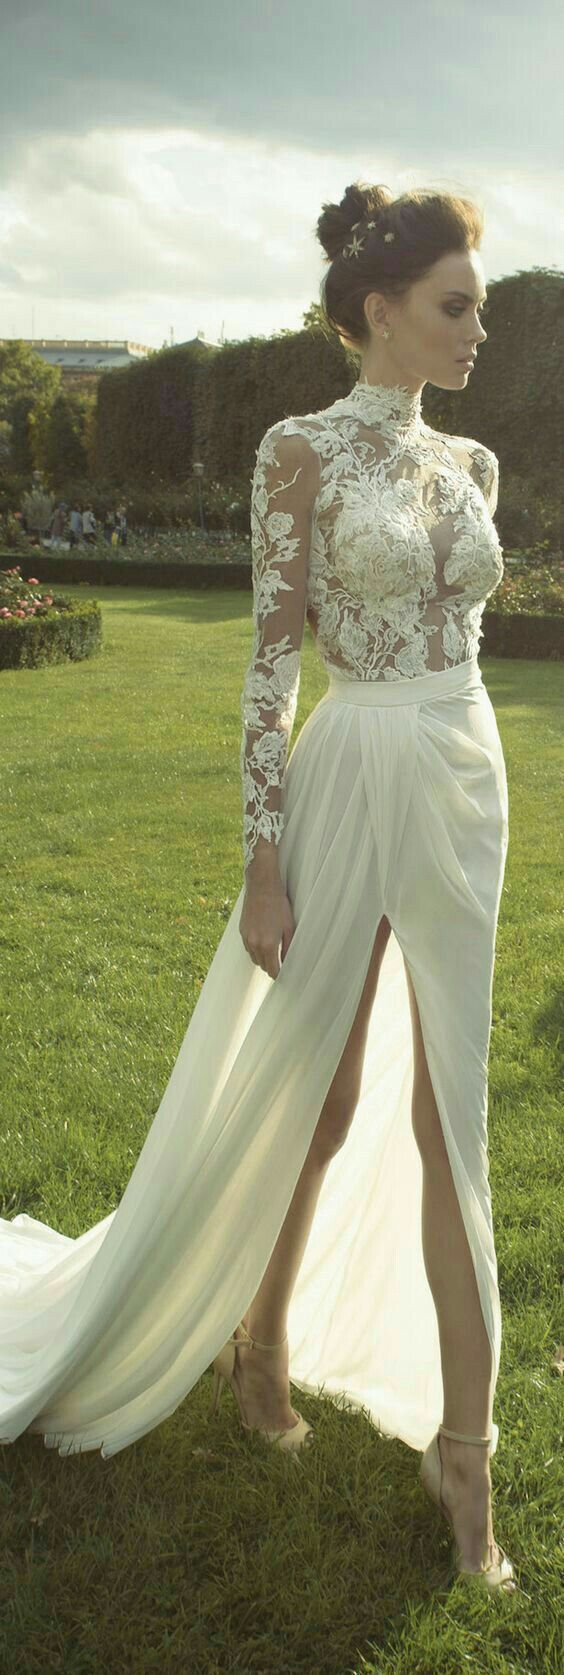 Pin by terry brown on beautiful ladies pinterest wedding dress